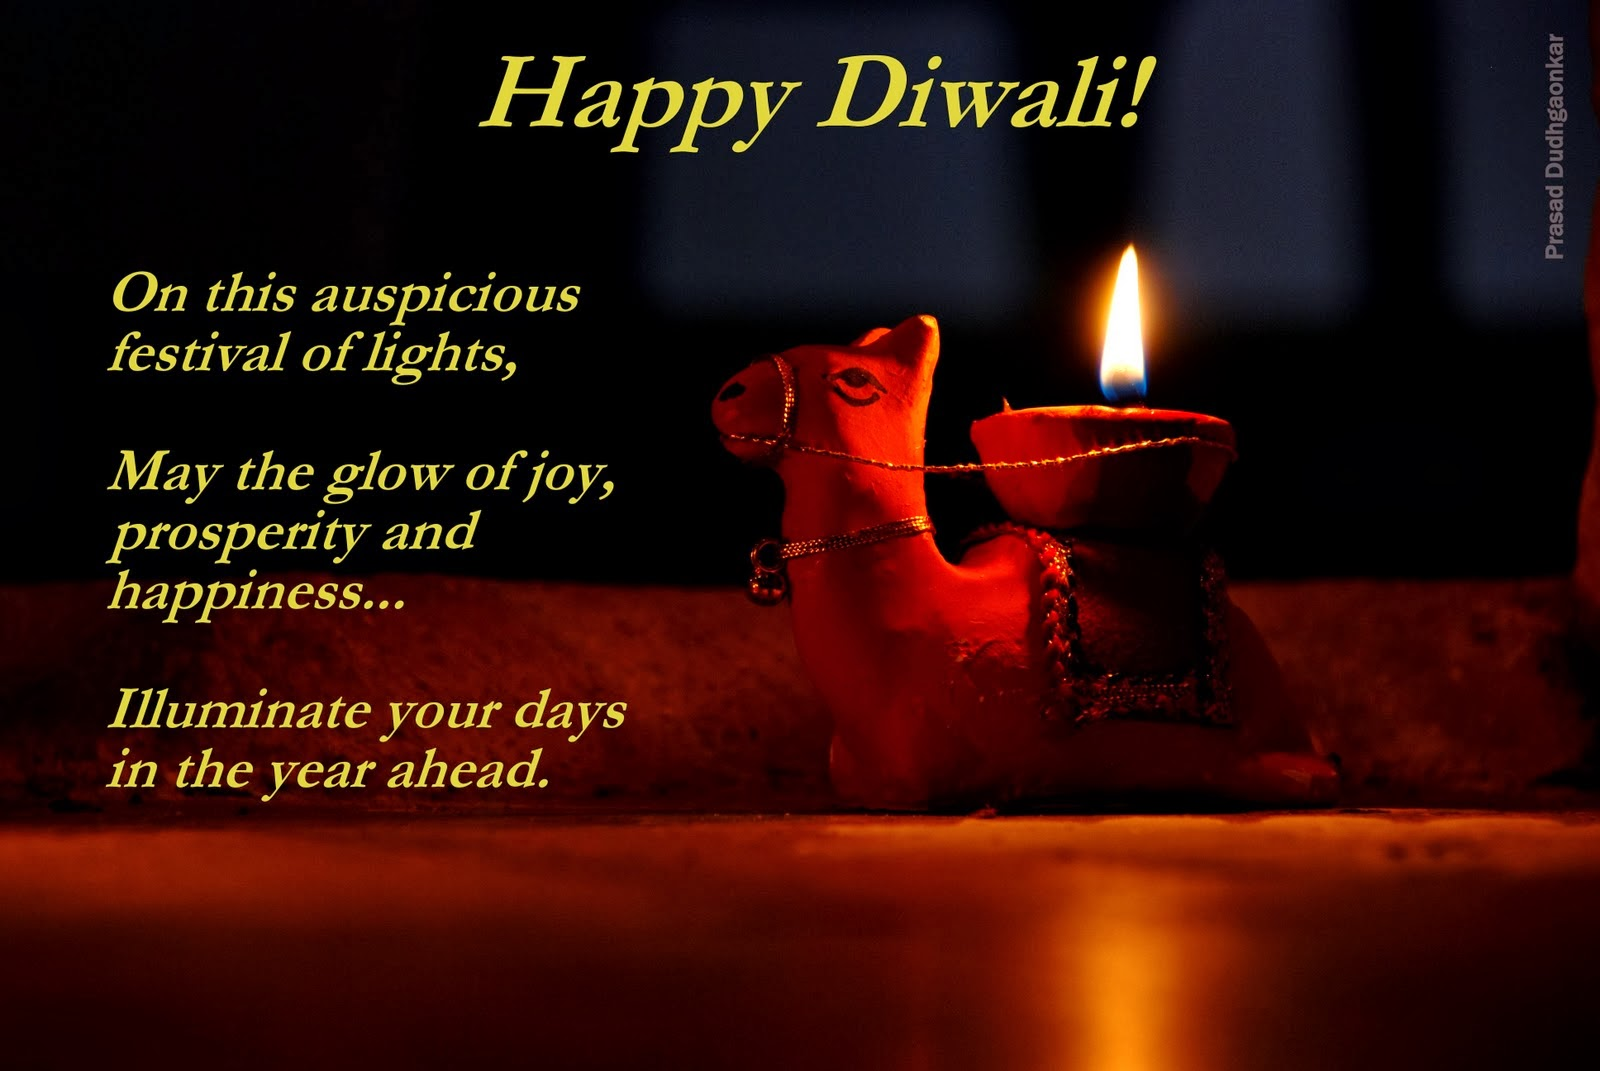 happy diwali wishes greetings wallpapers